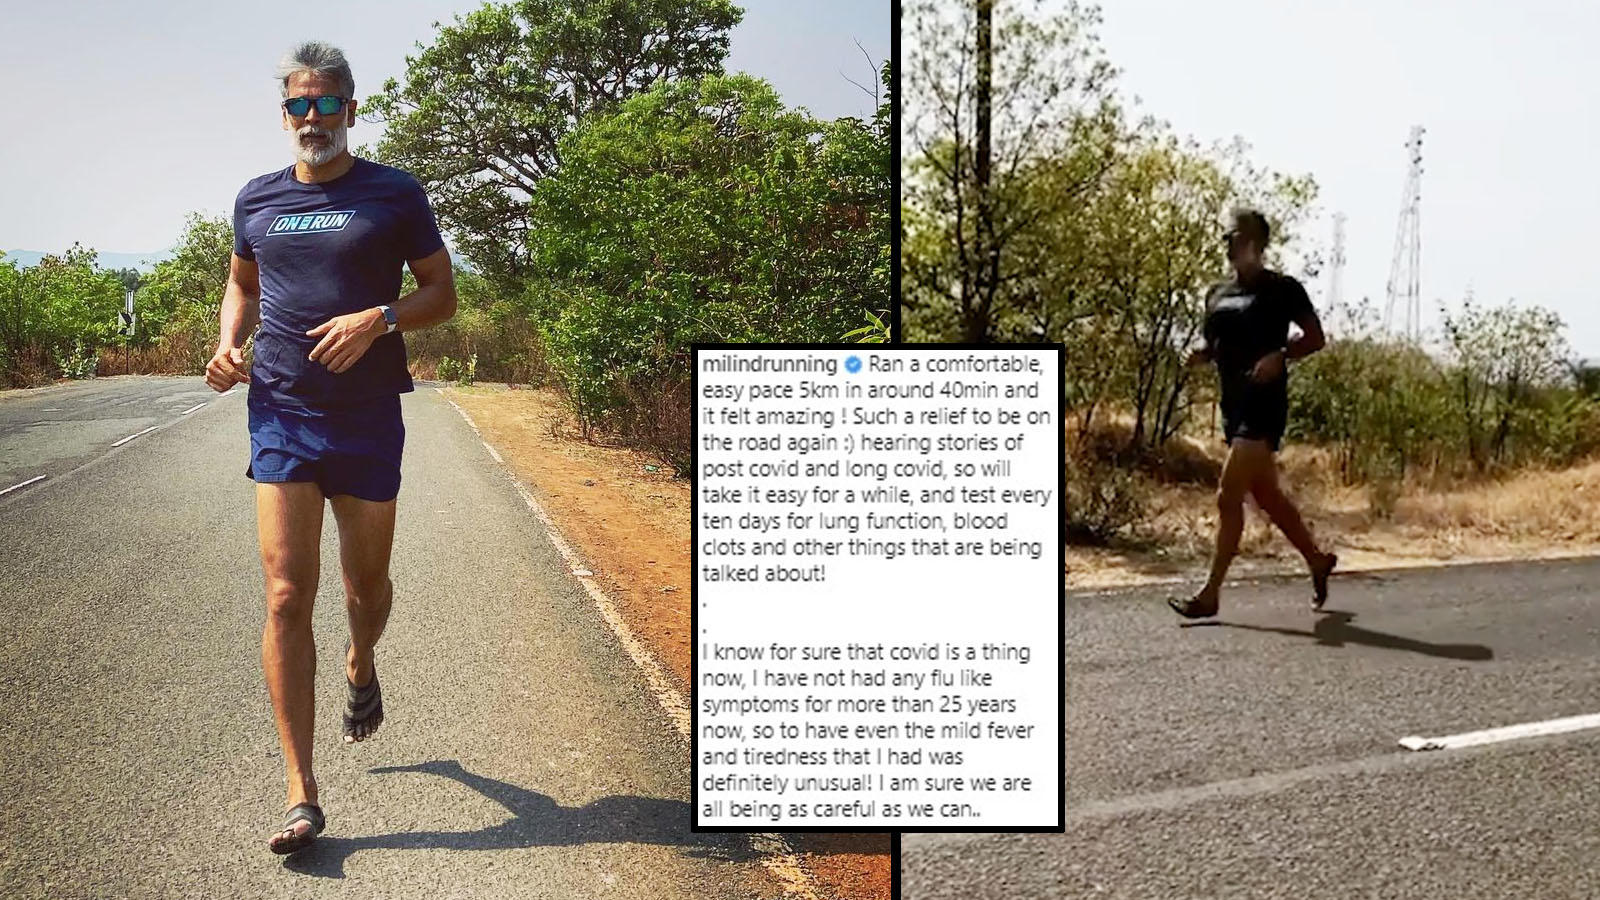 'Never had a flu like this…': Milind Soman goes for a 5km run after recovering from coronavirus | Hindi Movie News – Bollywood – Times of India